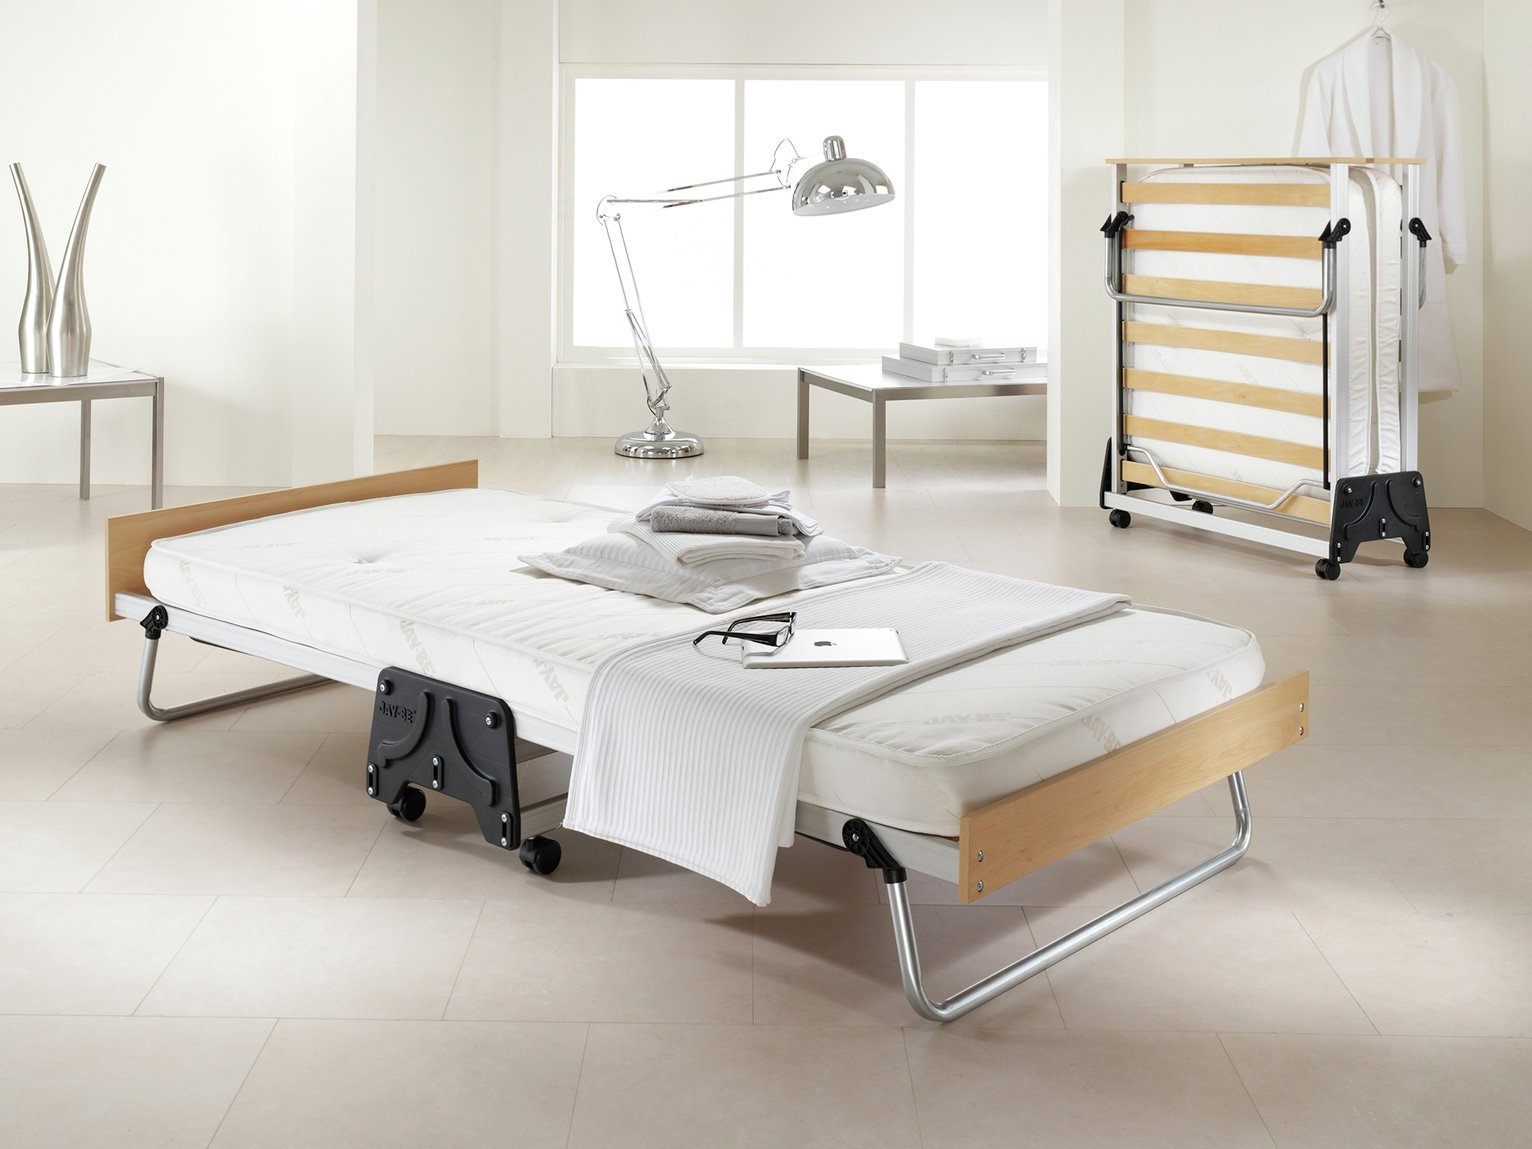 Jay-Be J-Bed Folding Guest Bed - Single - Fibre Topped Mattress